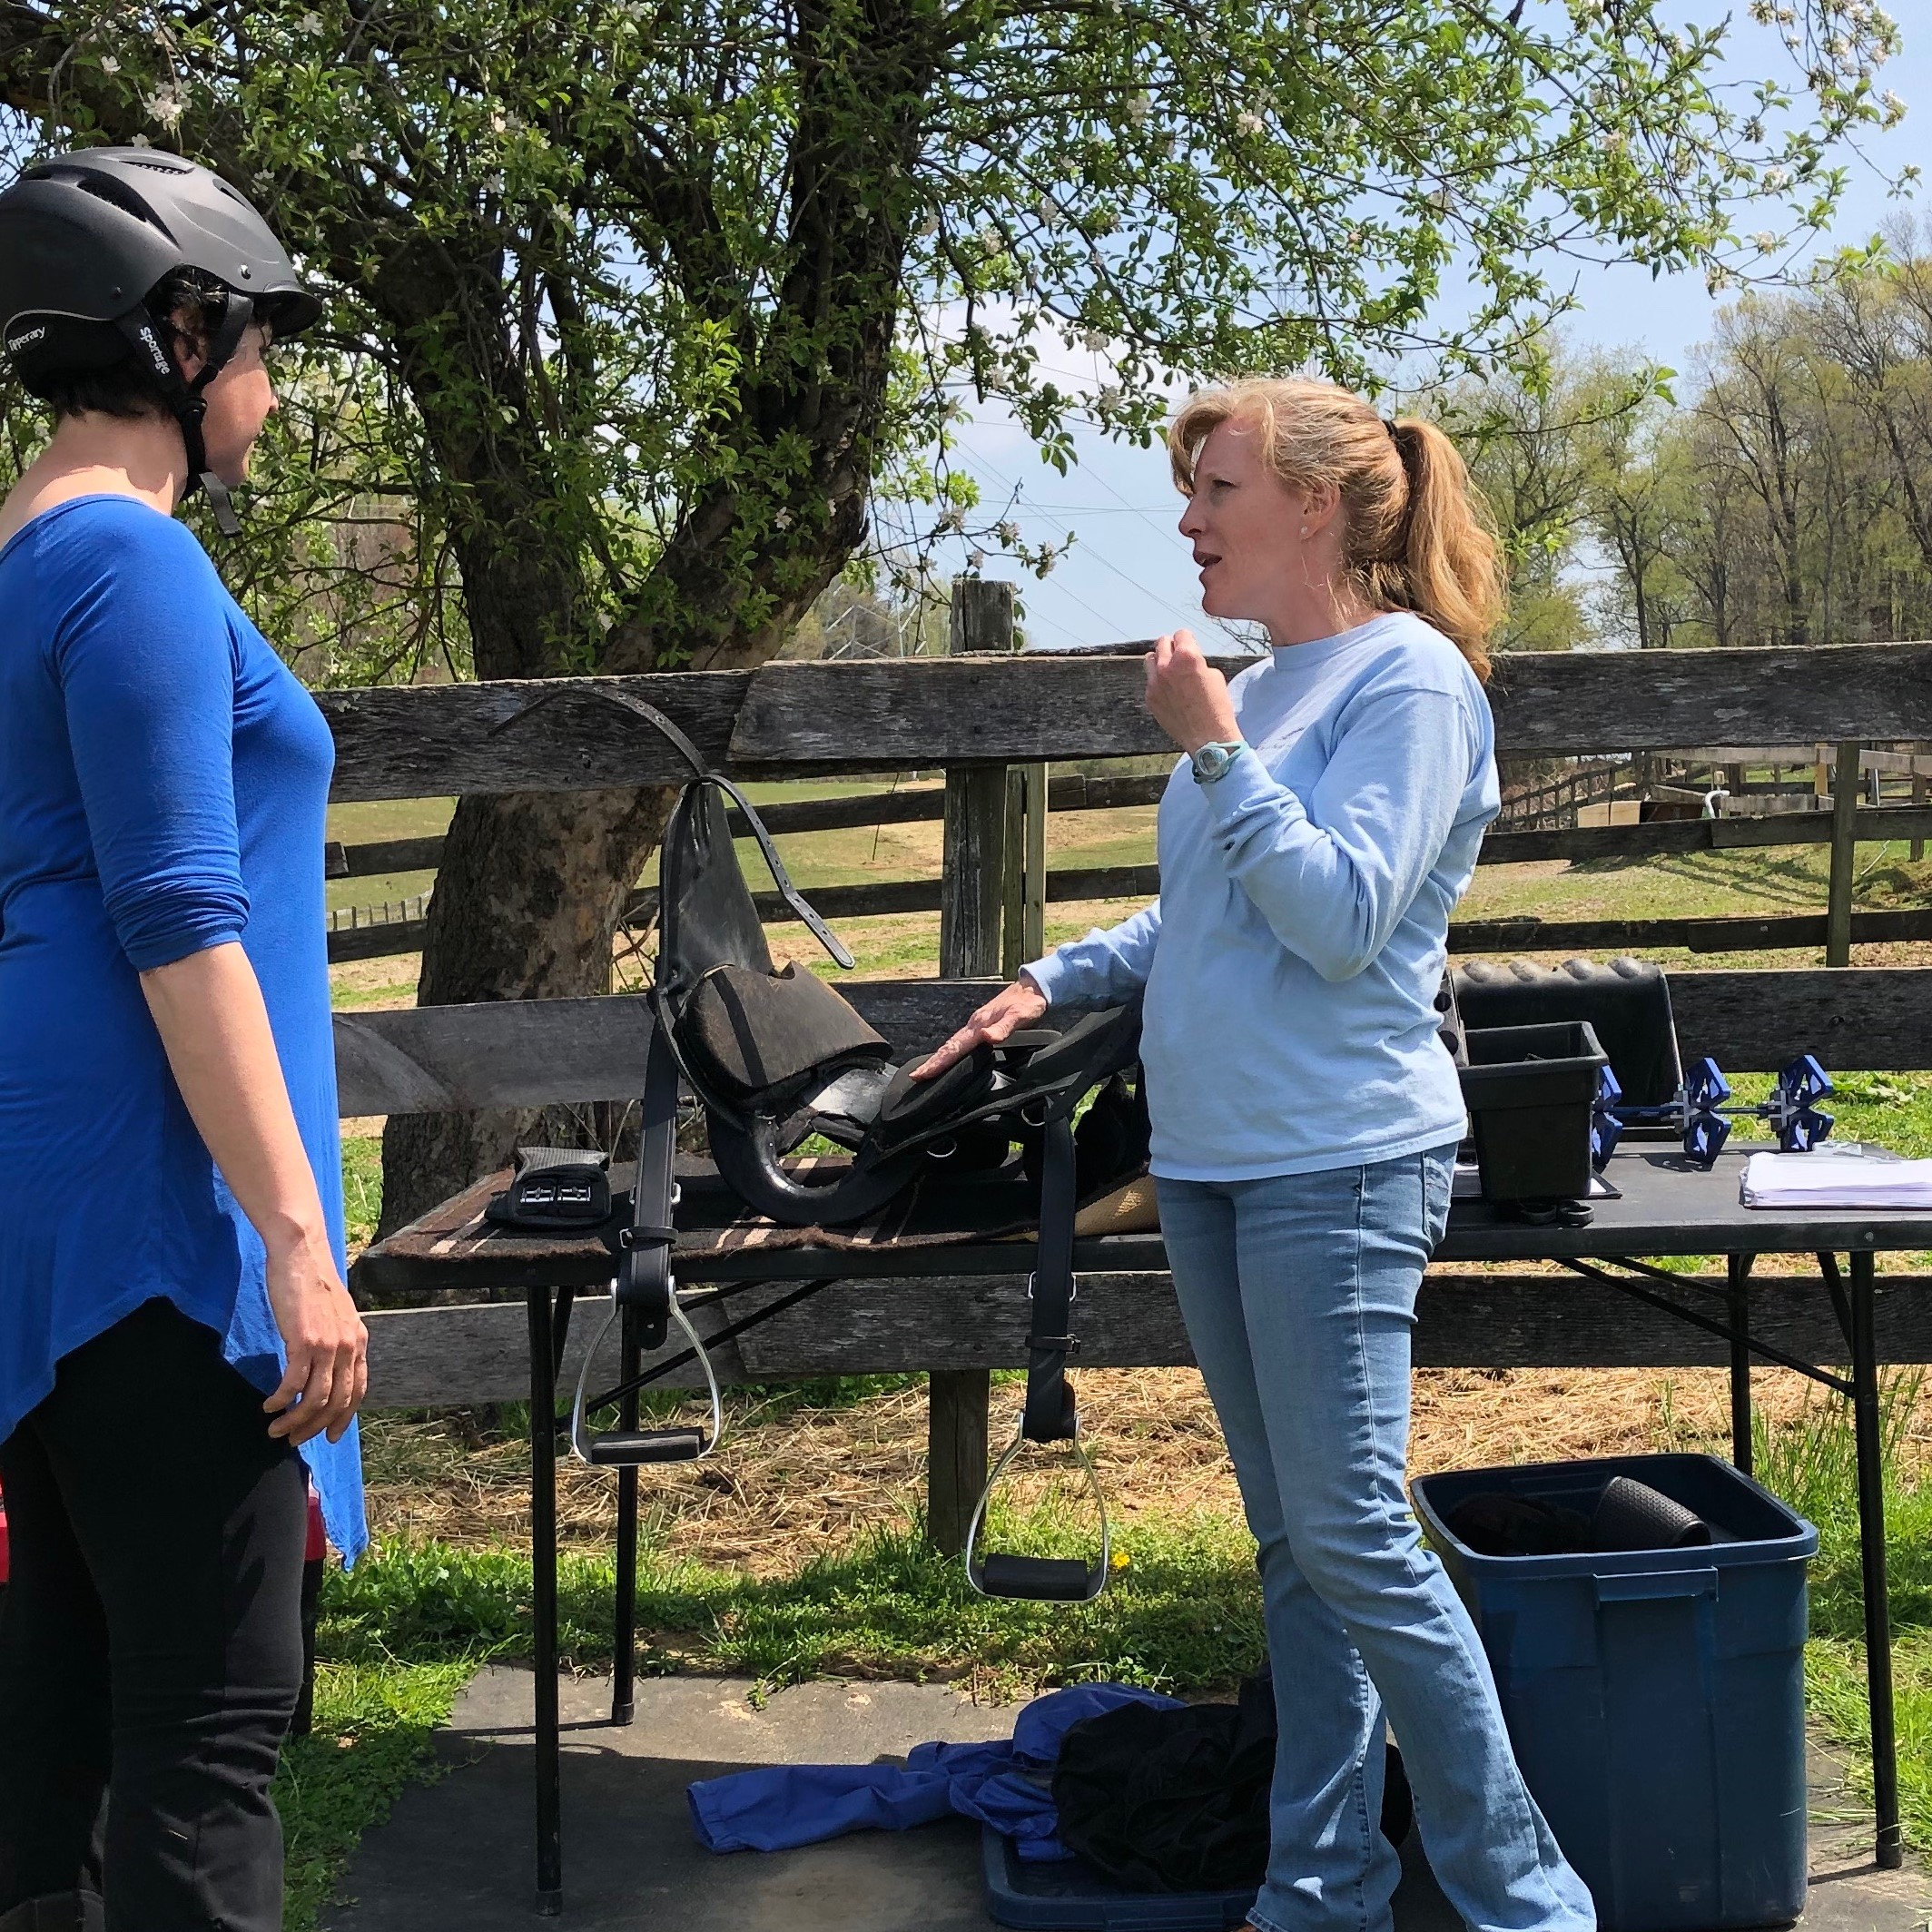 - Karen will end by discussing her findings with you and she will give recommendations for the best possible outcome for both horse and rider comfort and performance.